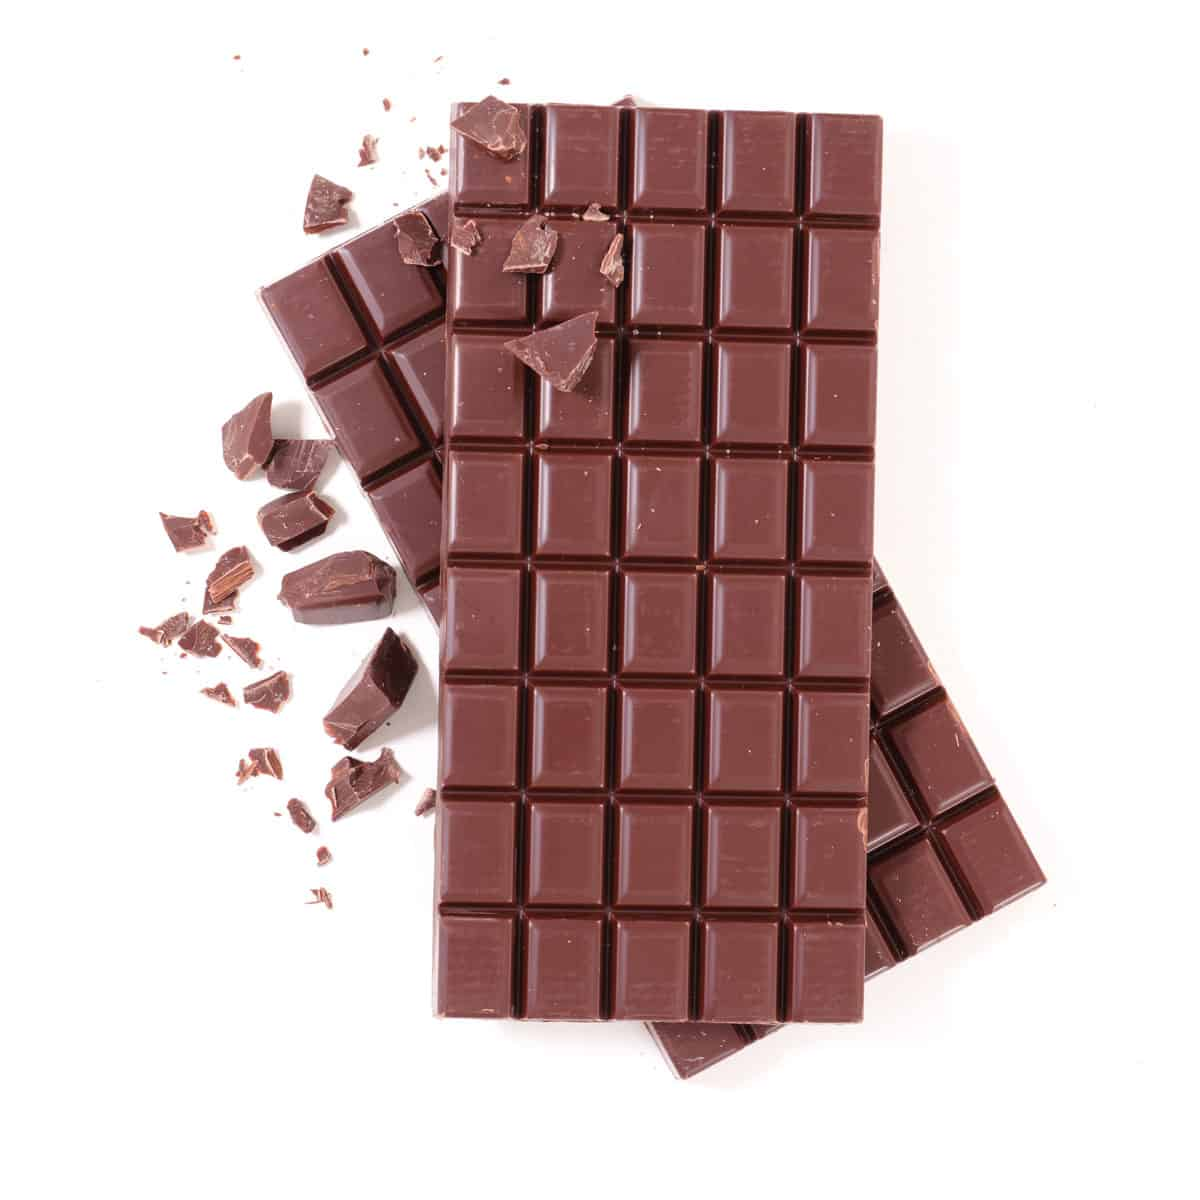 Two bars of chocolate on a white background.